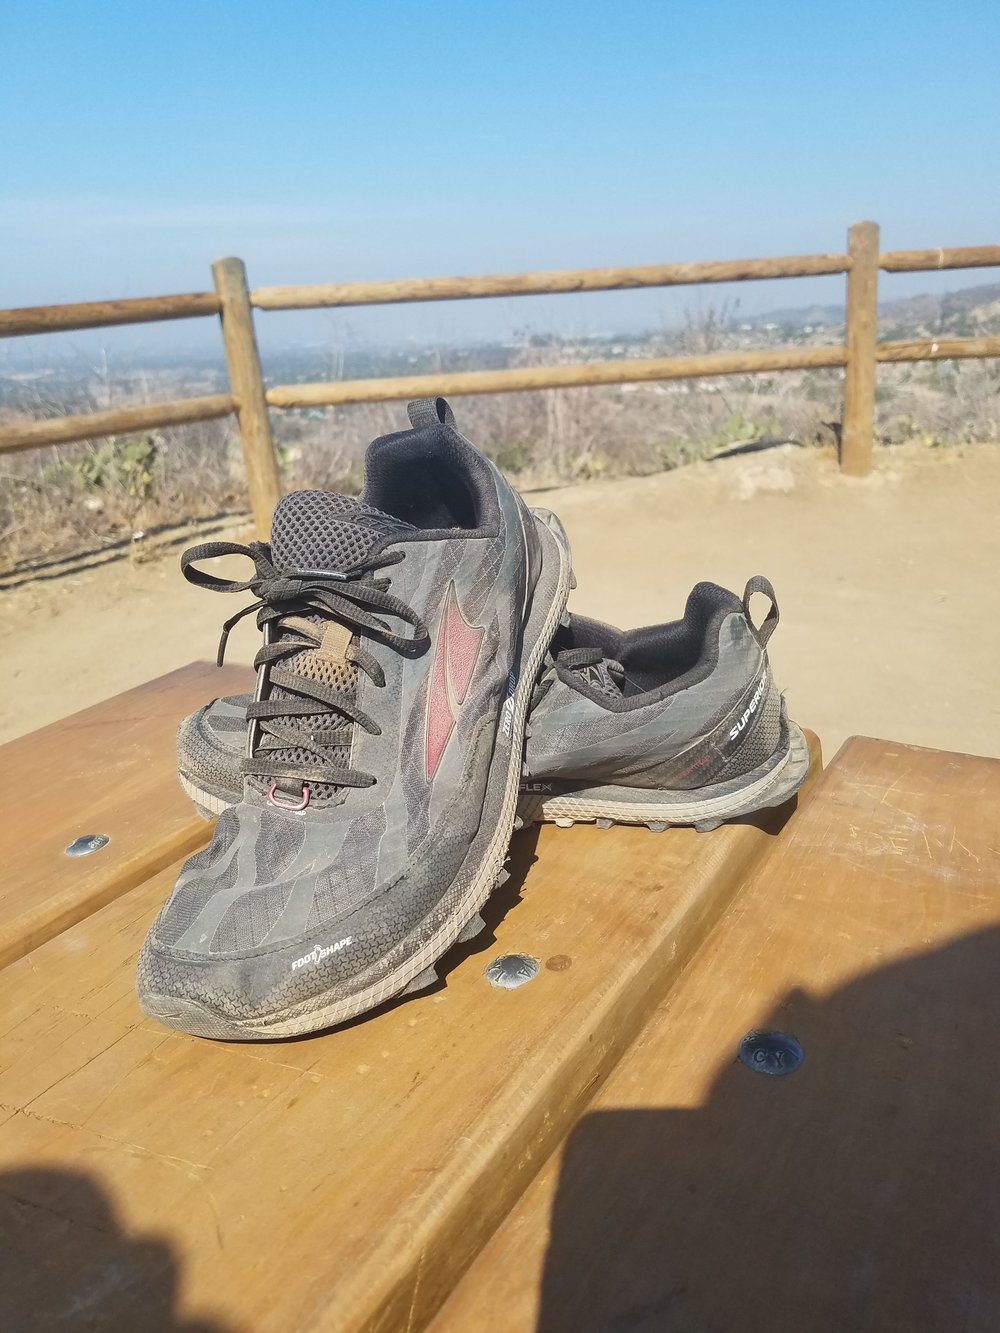 Portrait of the Altra Superior 3.5 after hitting the 200 mile mark.